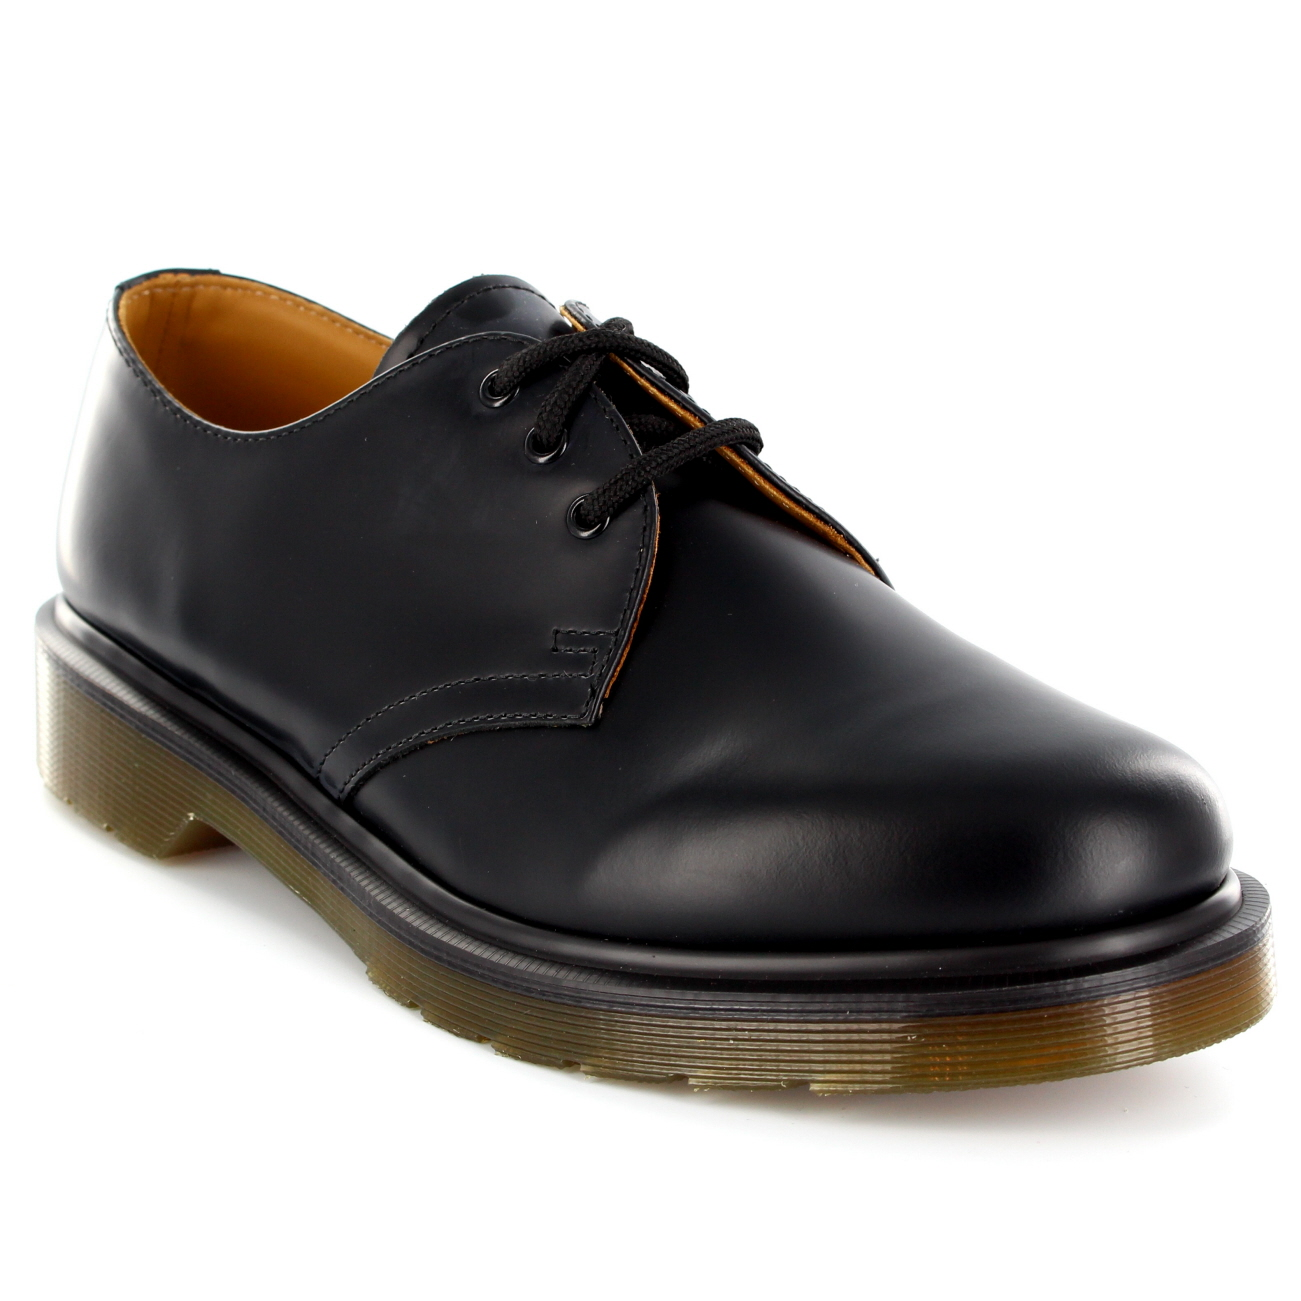 Dr Martens 1461 59 Shoes